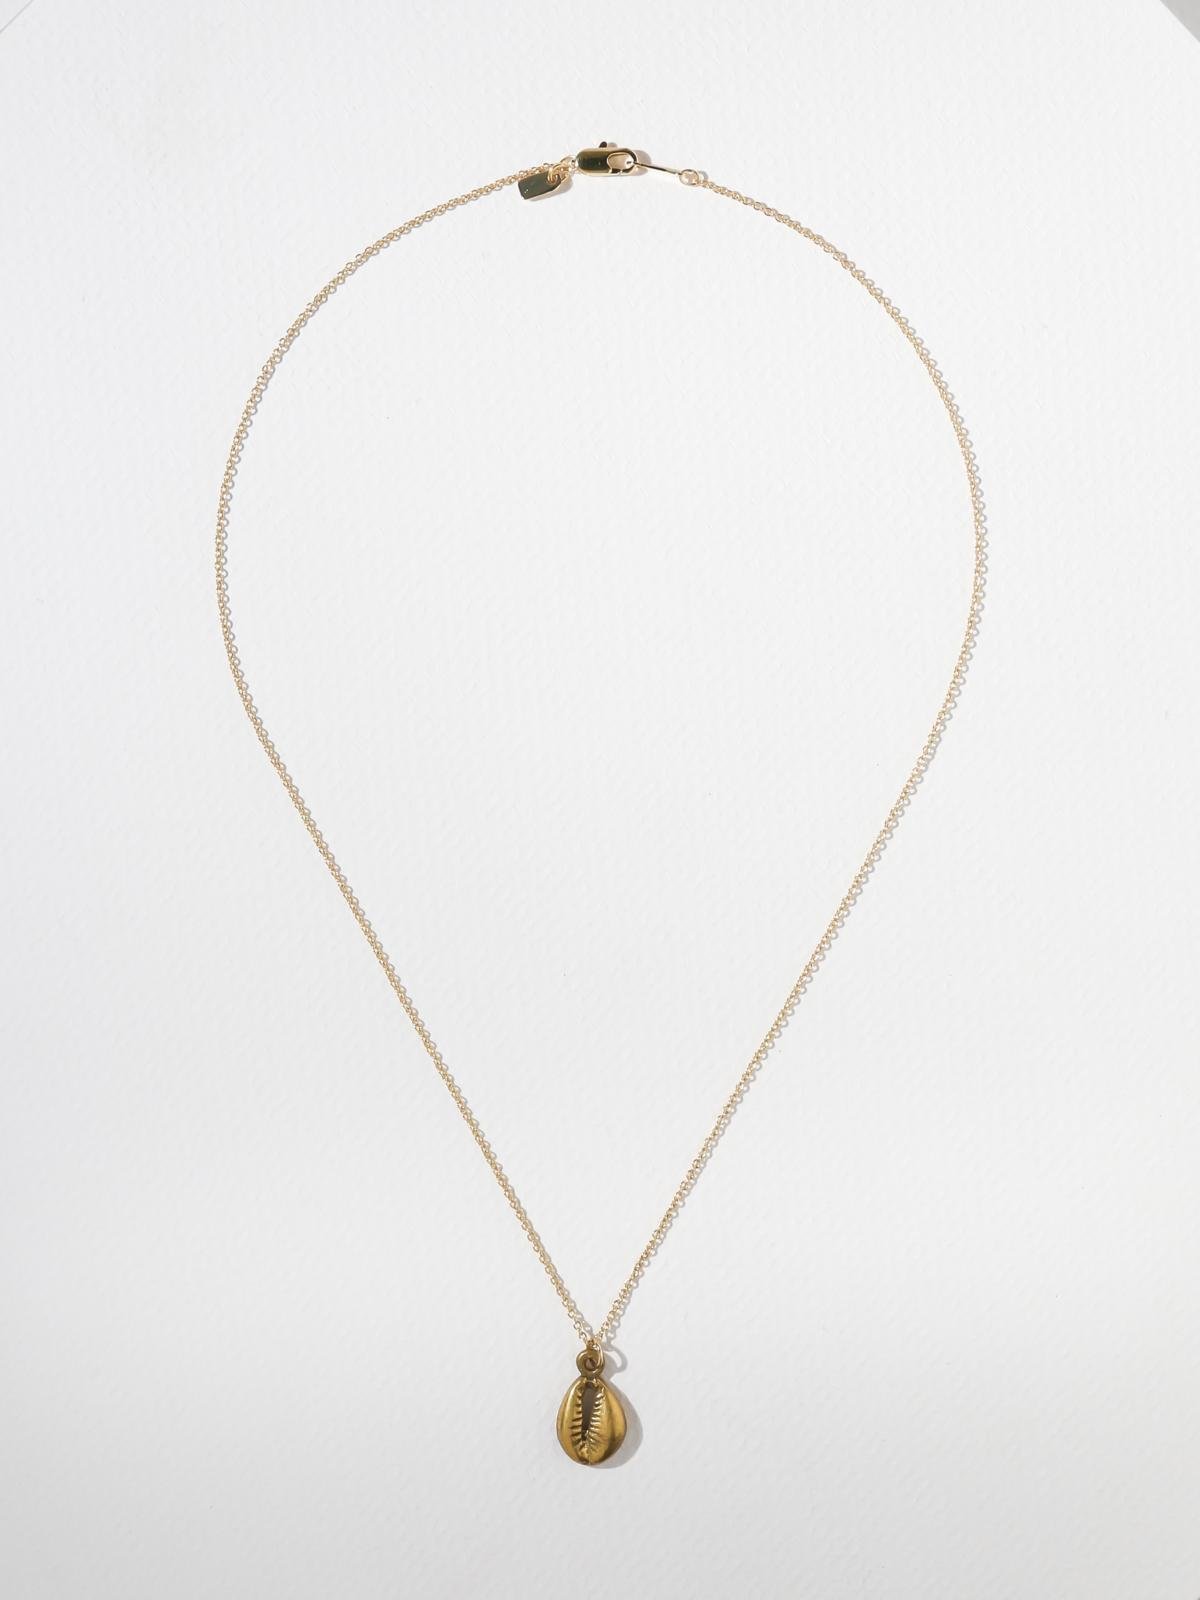 The Rockaway Necklace Brass